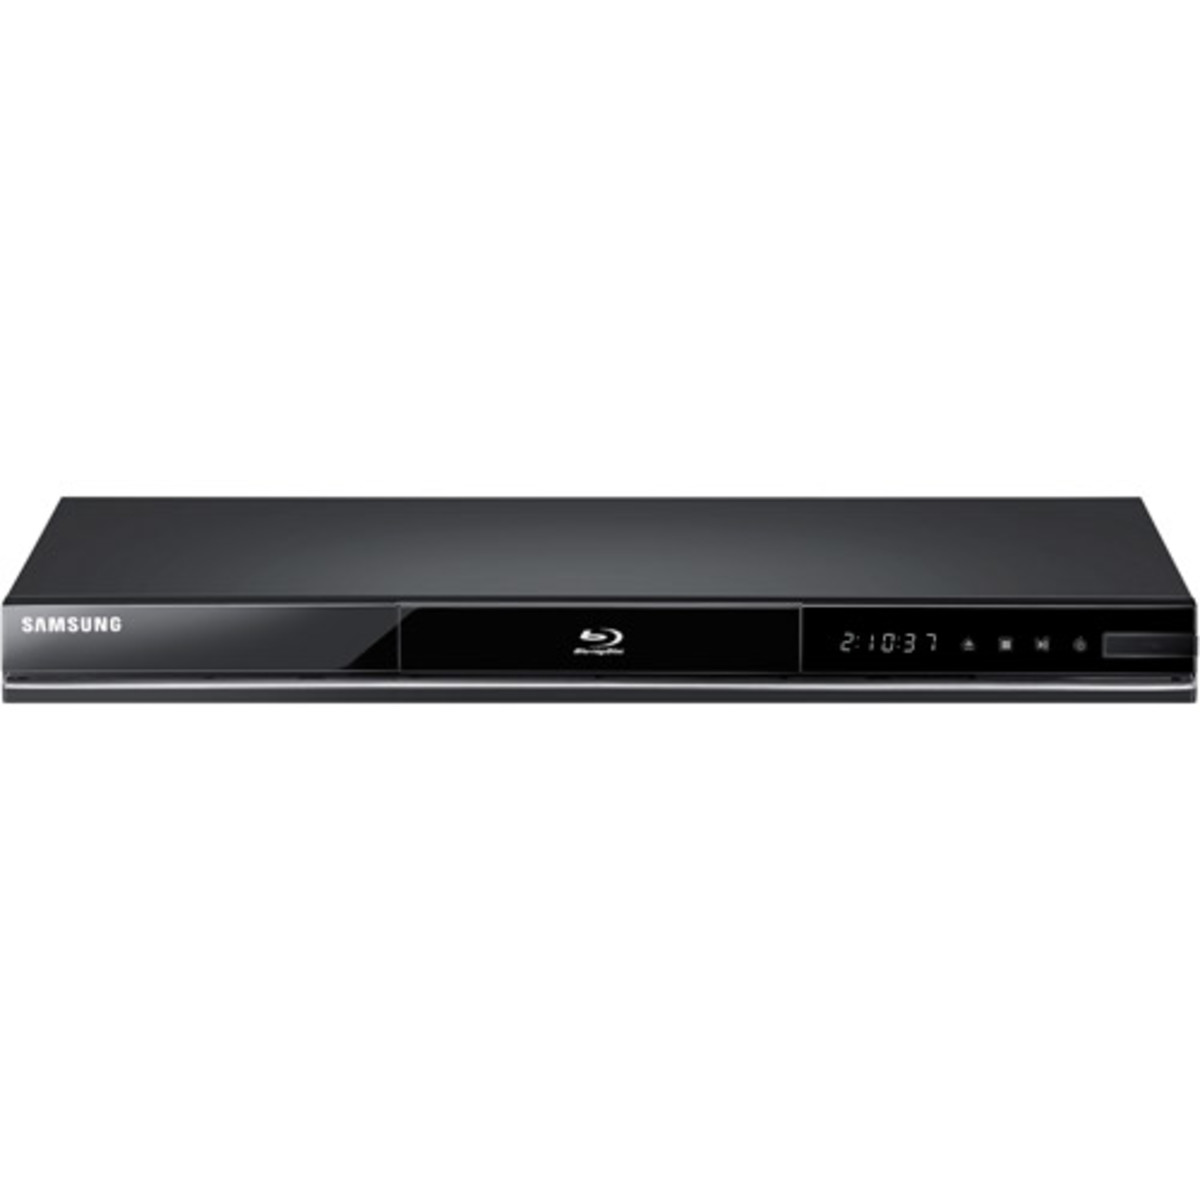 The Samsung BD-D5100 Blu-ray player supports DivX, AVI, WMV, MPEG-2 and a variety of other video formats.